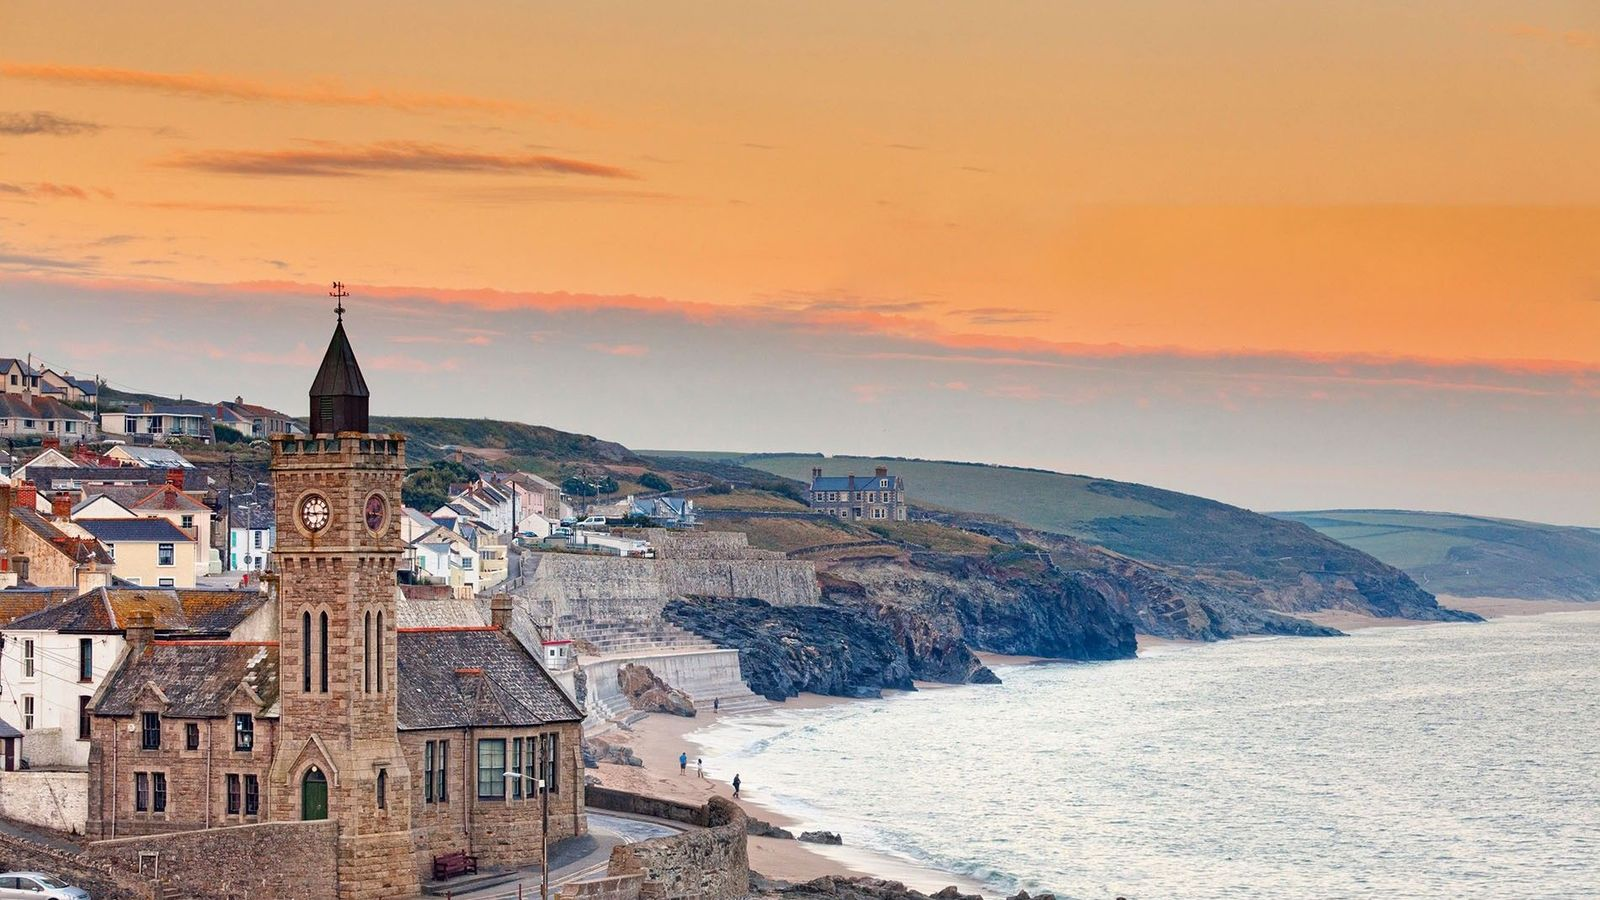 Along the coast of Porthleven.